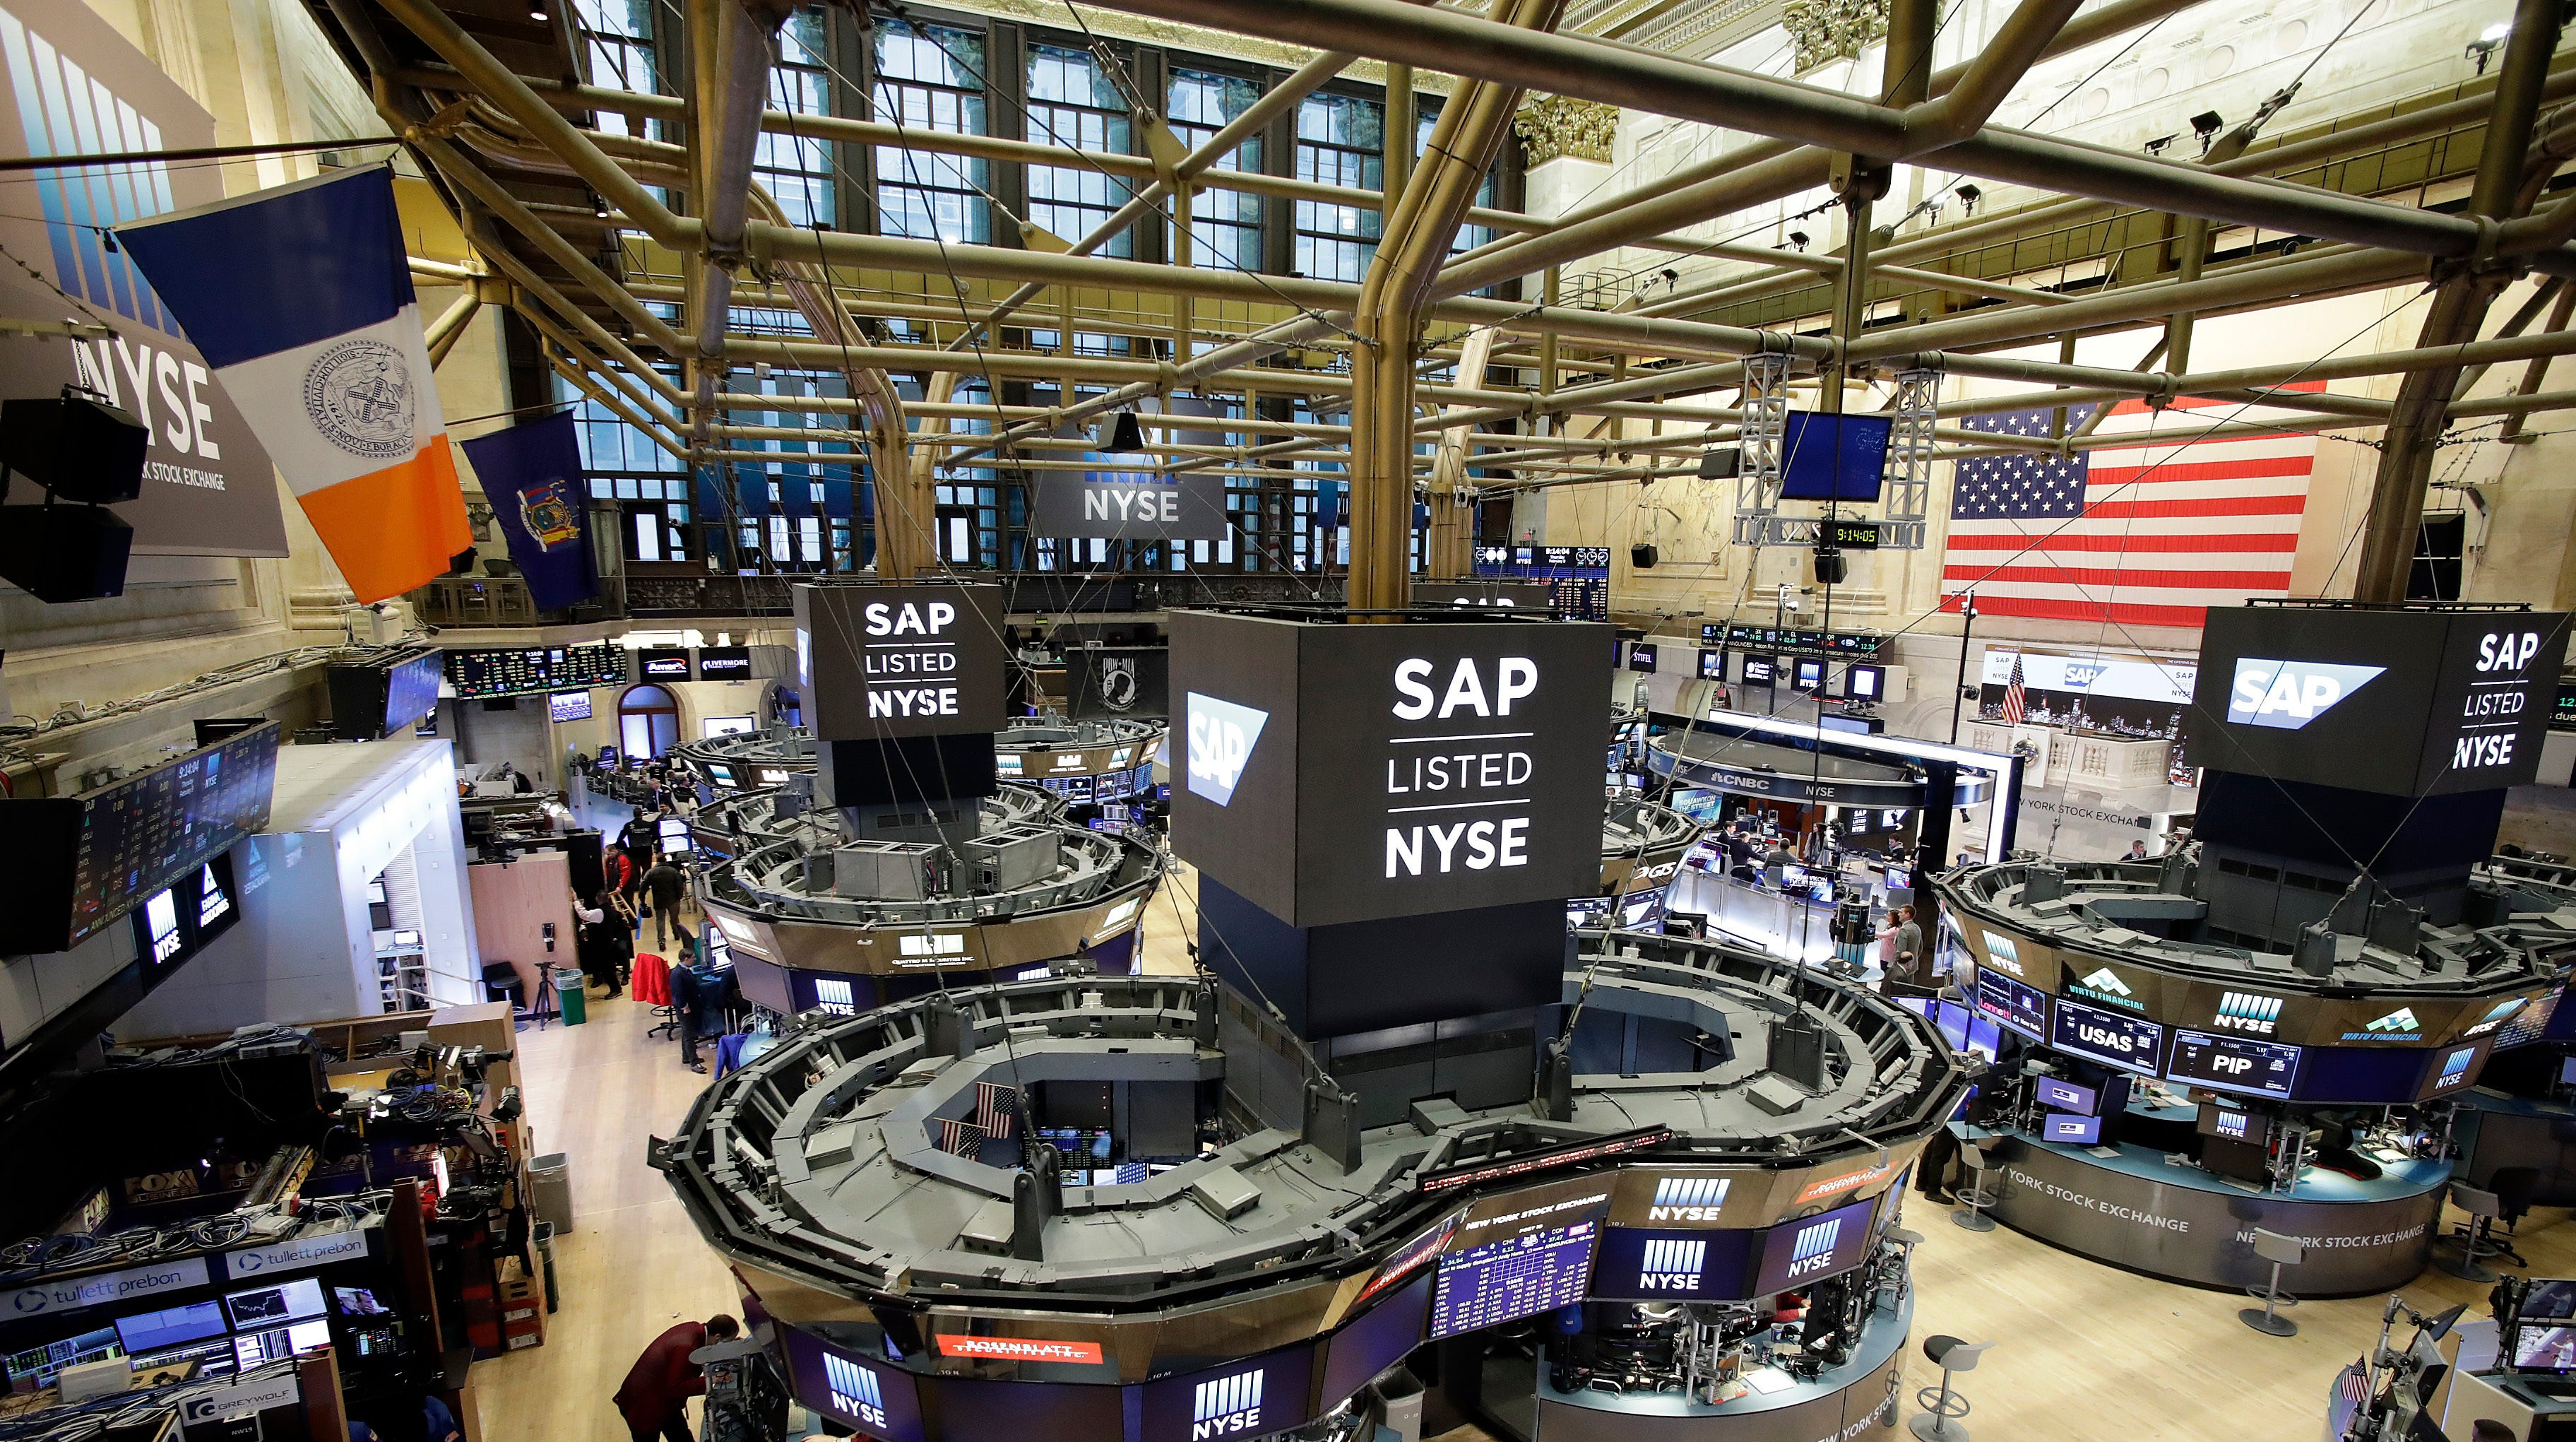 Dow Jones industrial average eyes steep drop at open amid trade fears, oil price worries - USA TODAY thumbnail